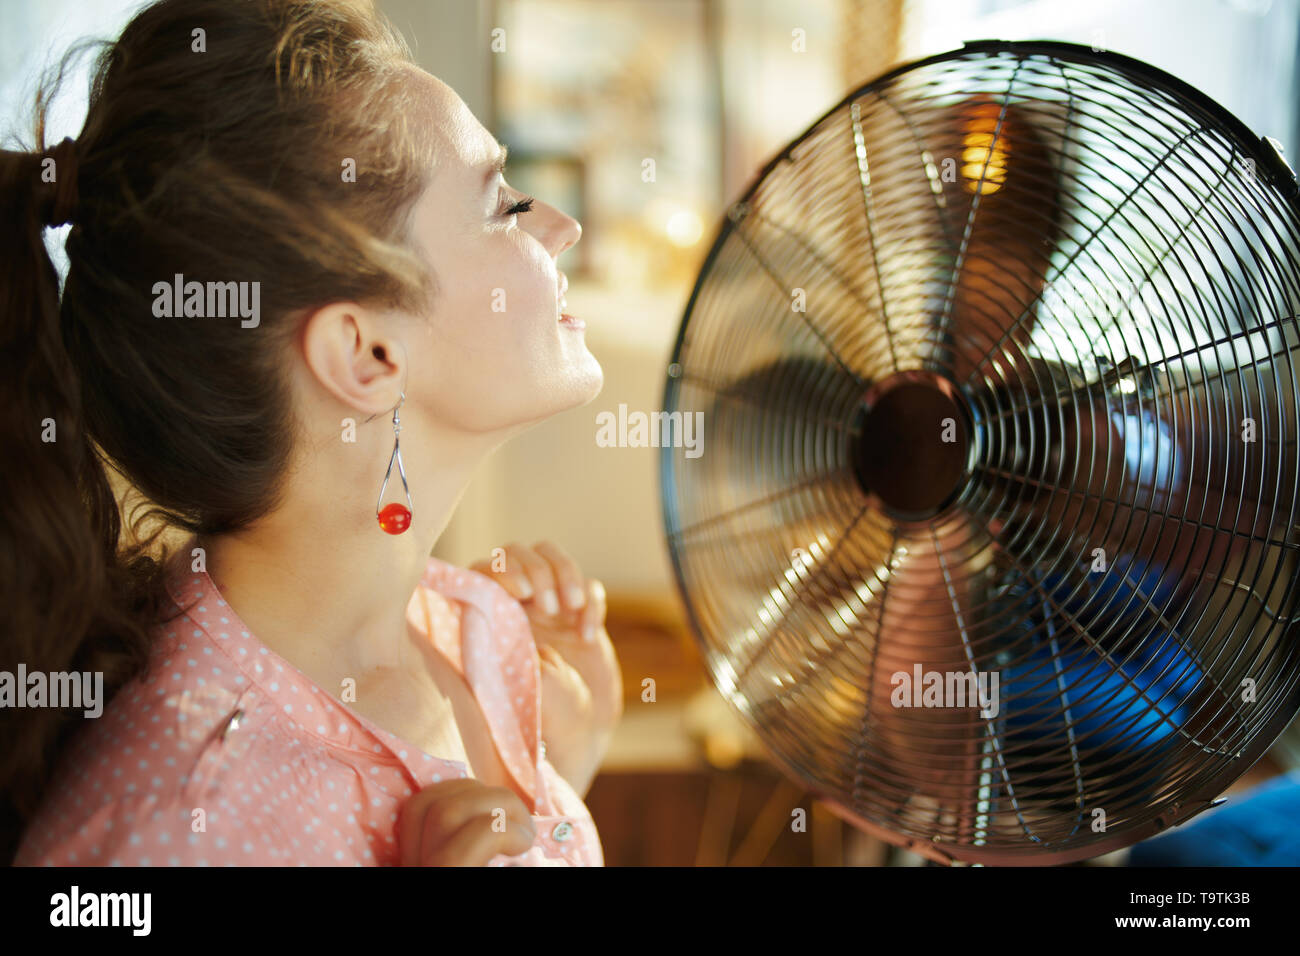 relaxed modern woman in the modern house in sunny hot summer day enjoying breeze in the front of working fan. - Stock Image